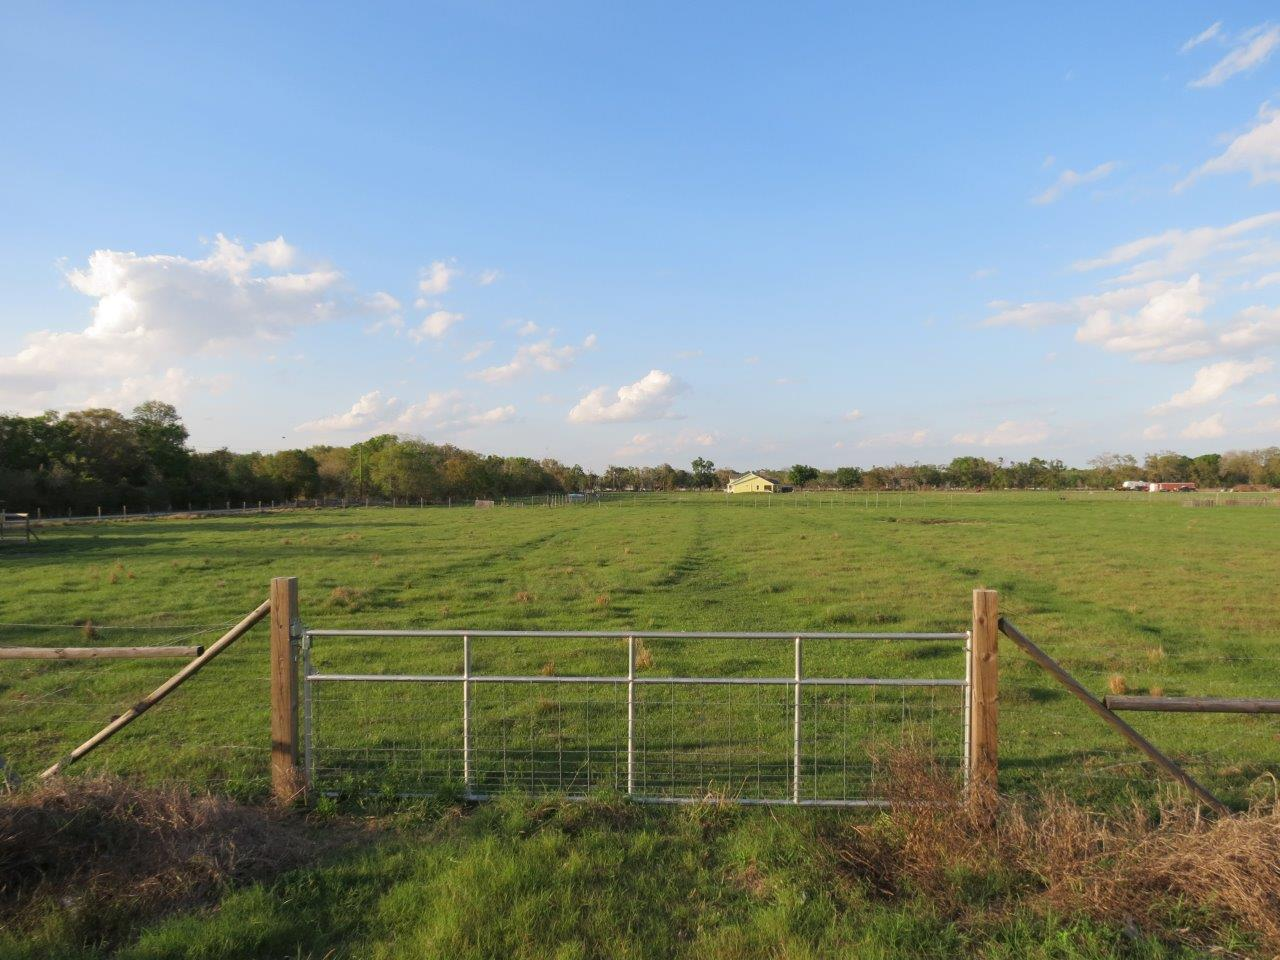 Carlton Lake Road 5 Acre Homesite Farm in Wimauma, FL